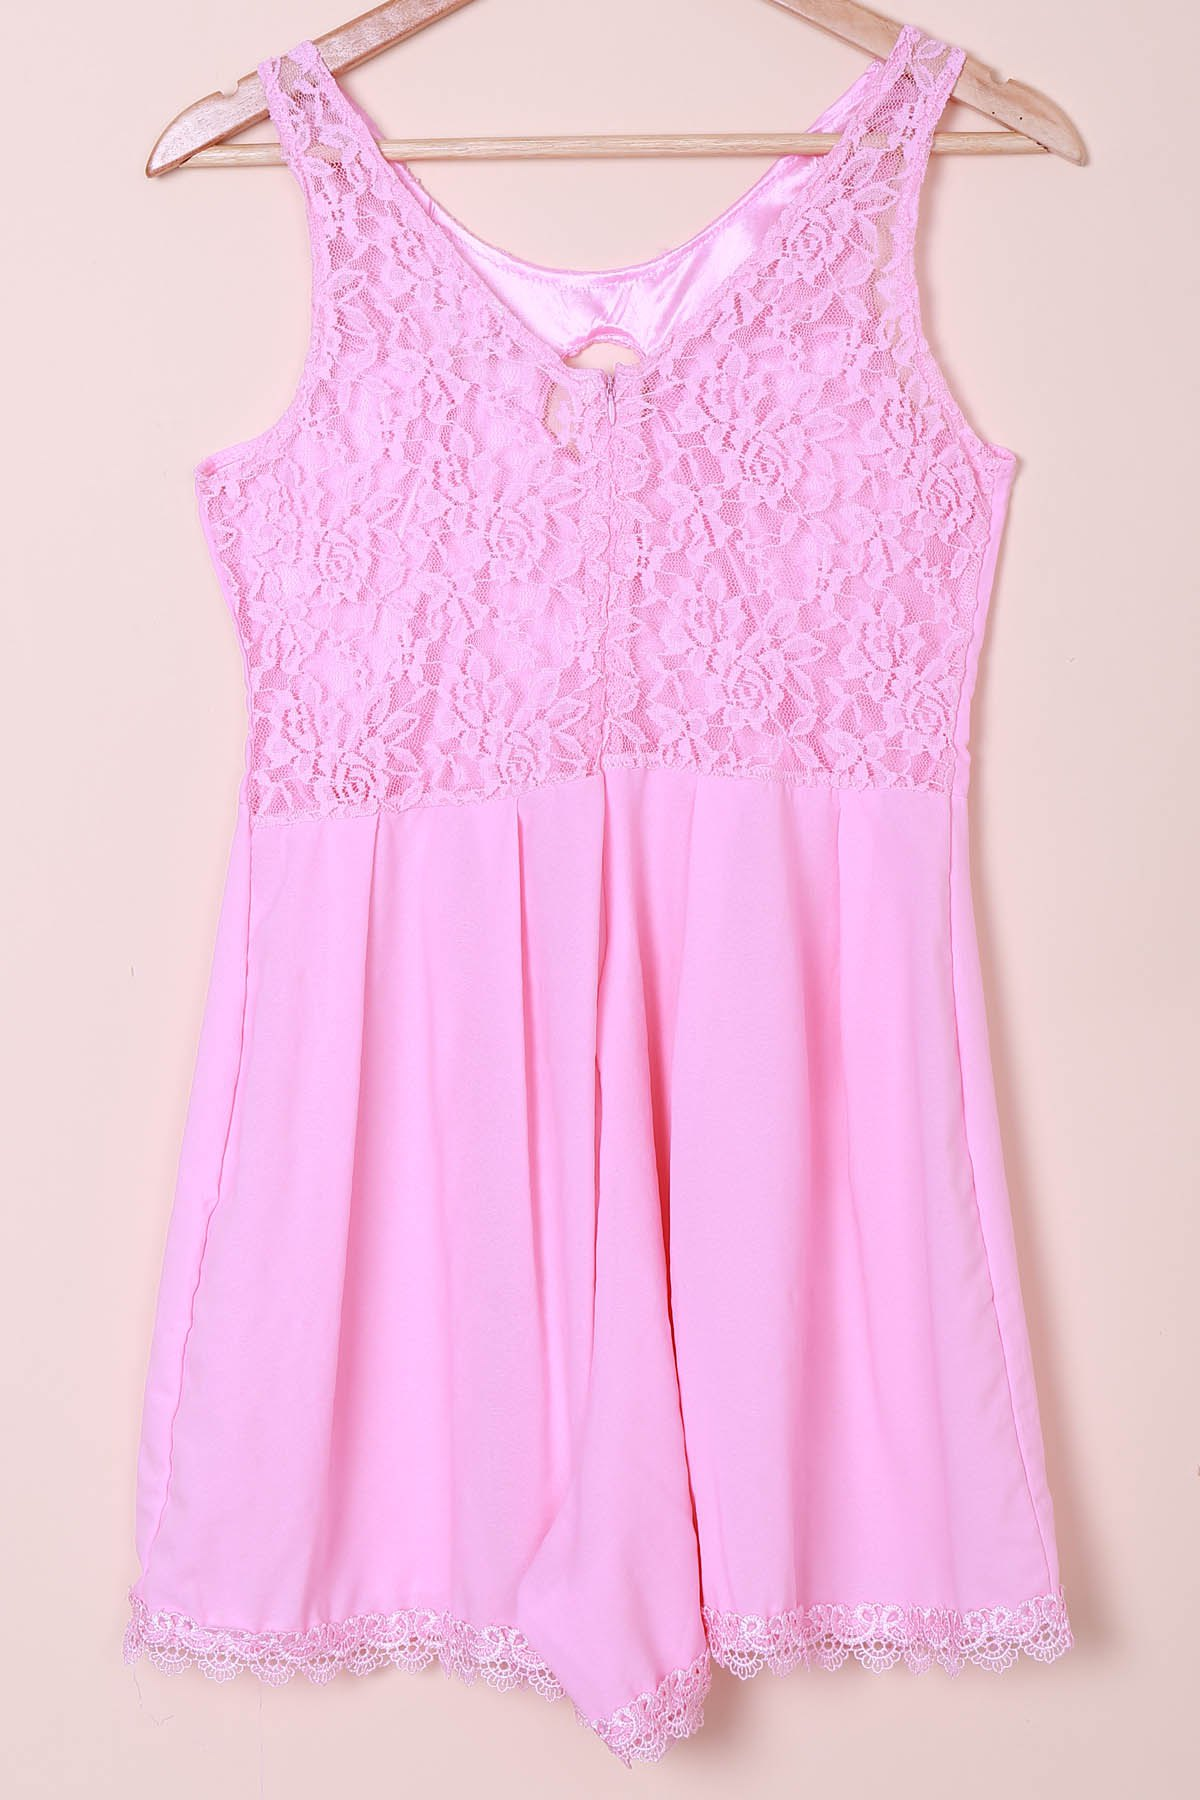 Sexy Scoop Collar Sleeveless Laciness Hollow Out Women's Romper - PINK XL